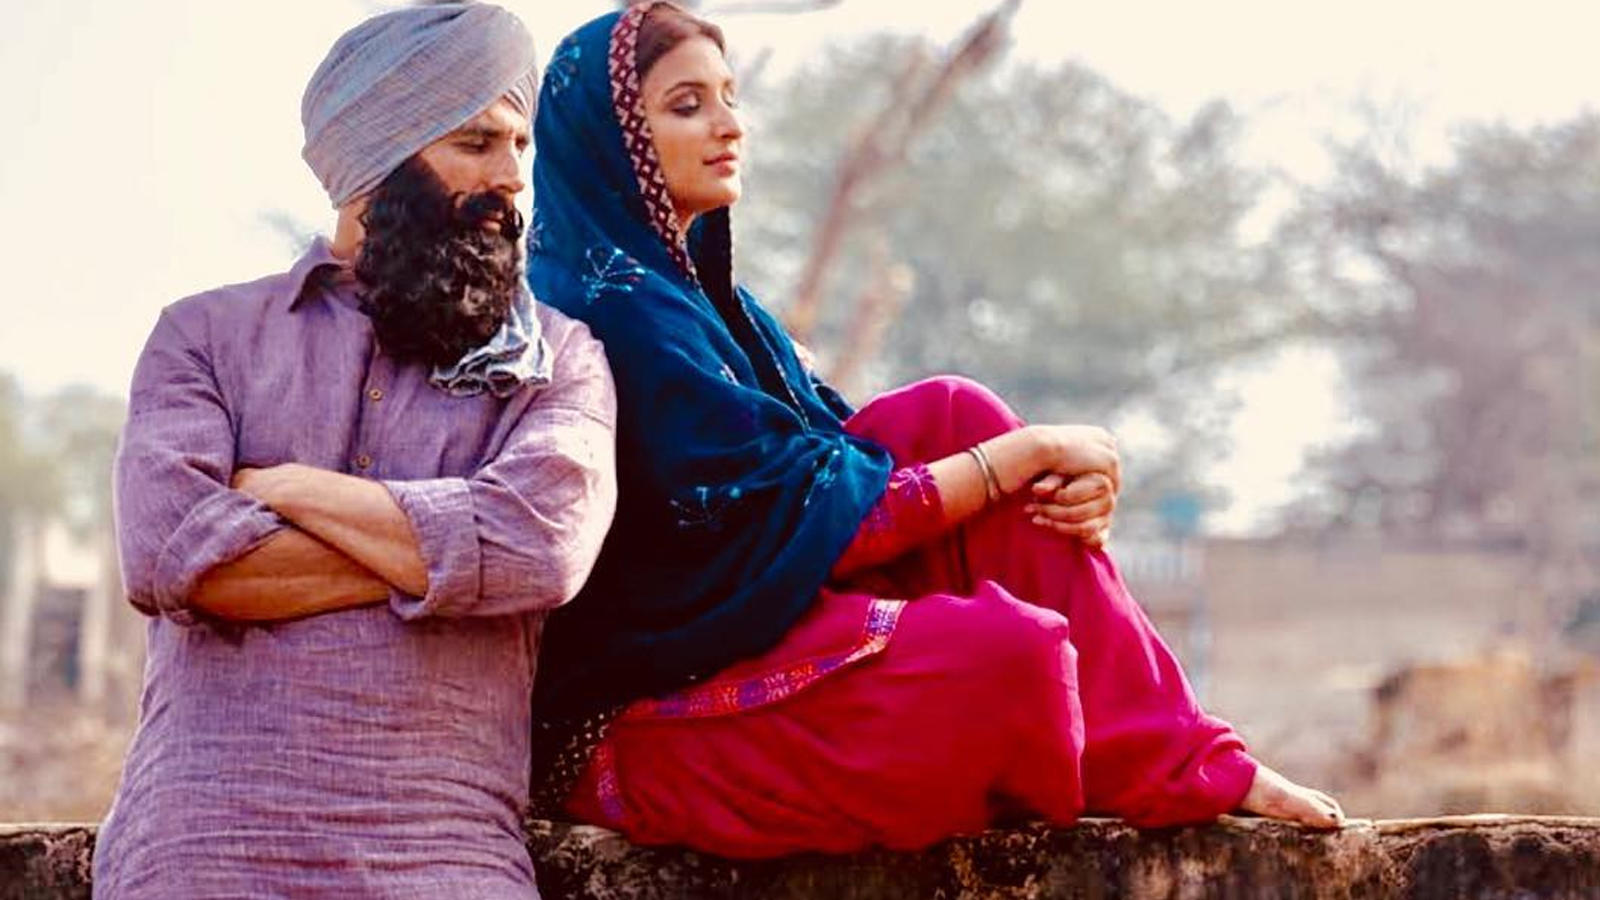 Parineeti Chopra speaks about playing Akshay Kumar's wife in 'Kesari'